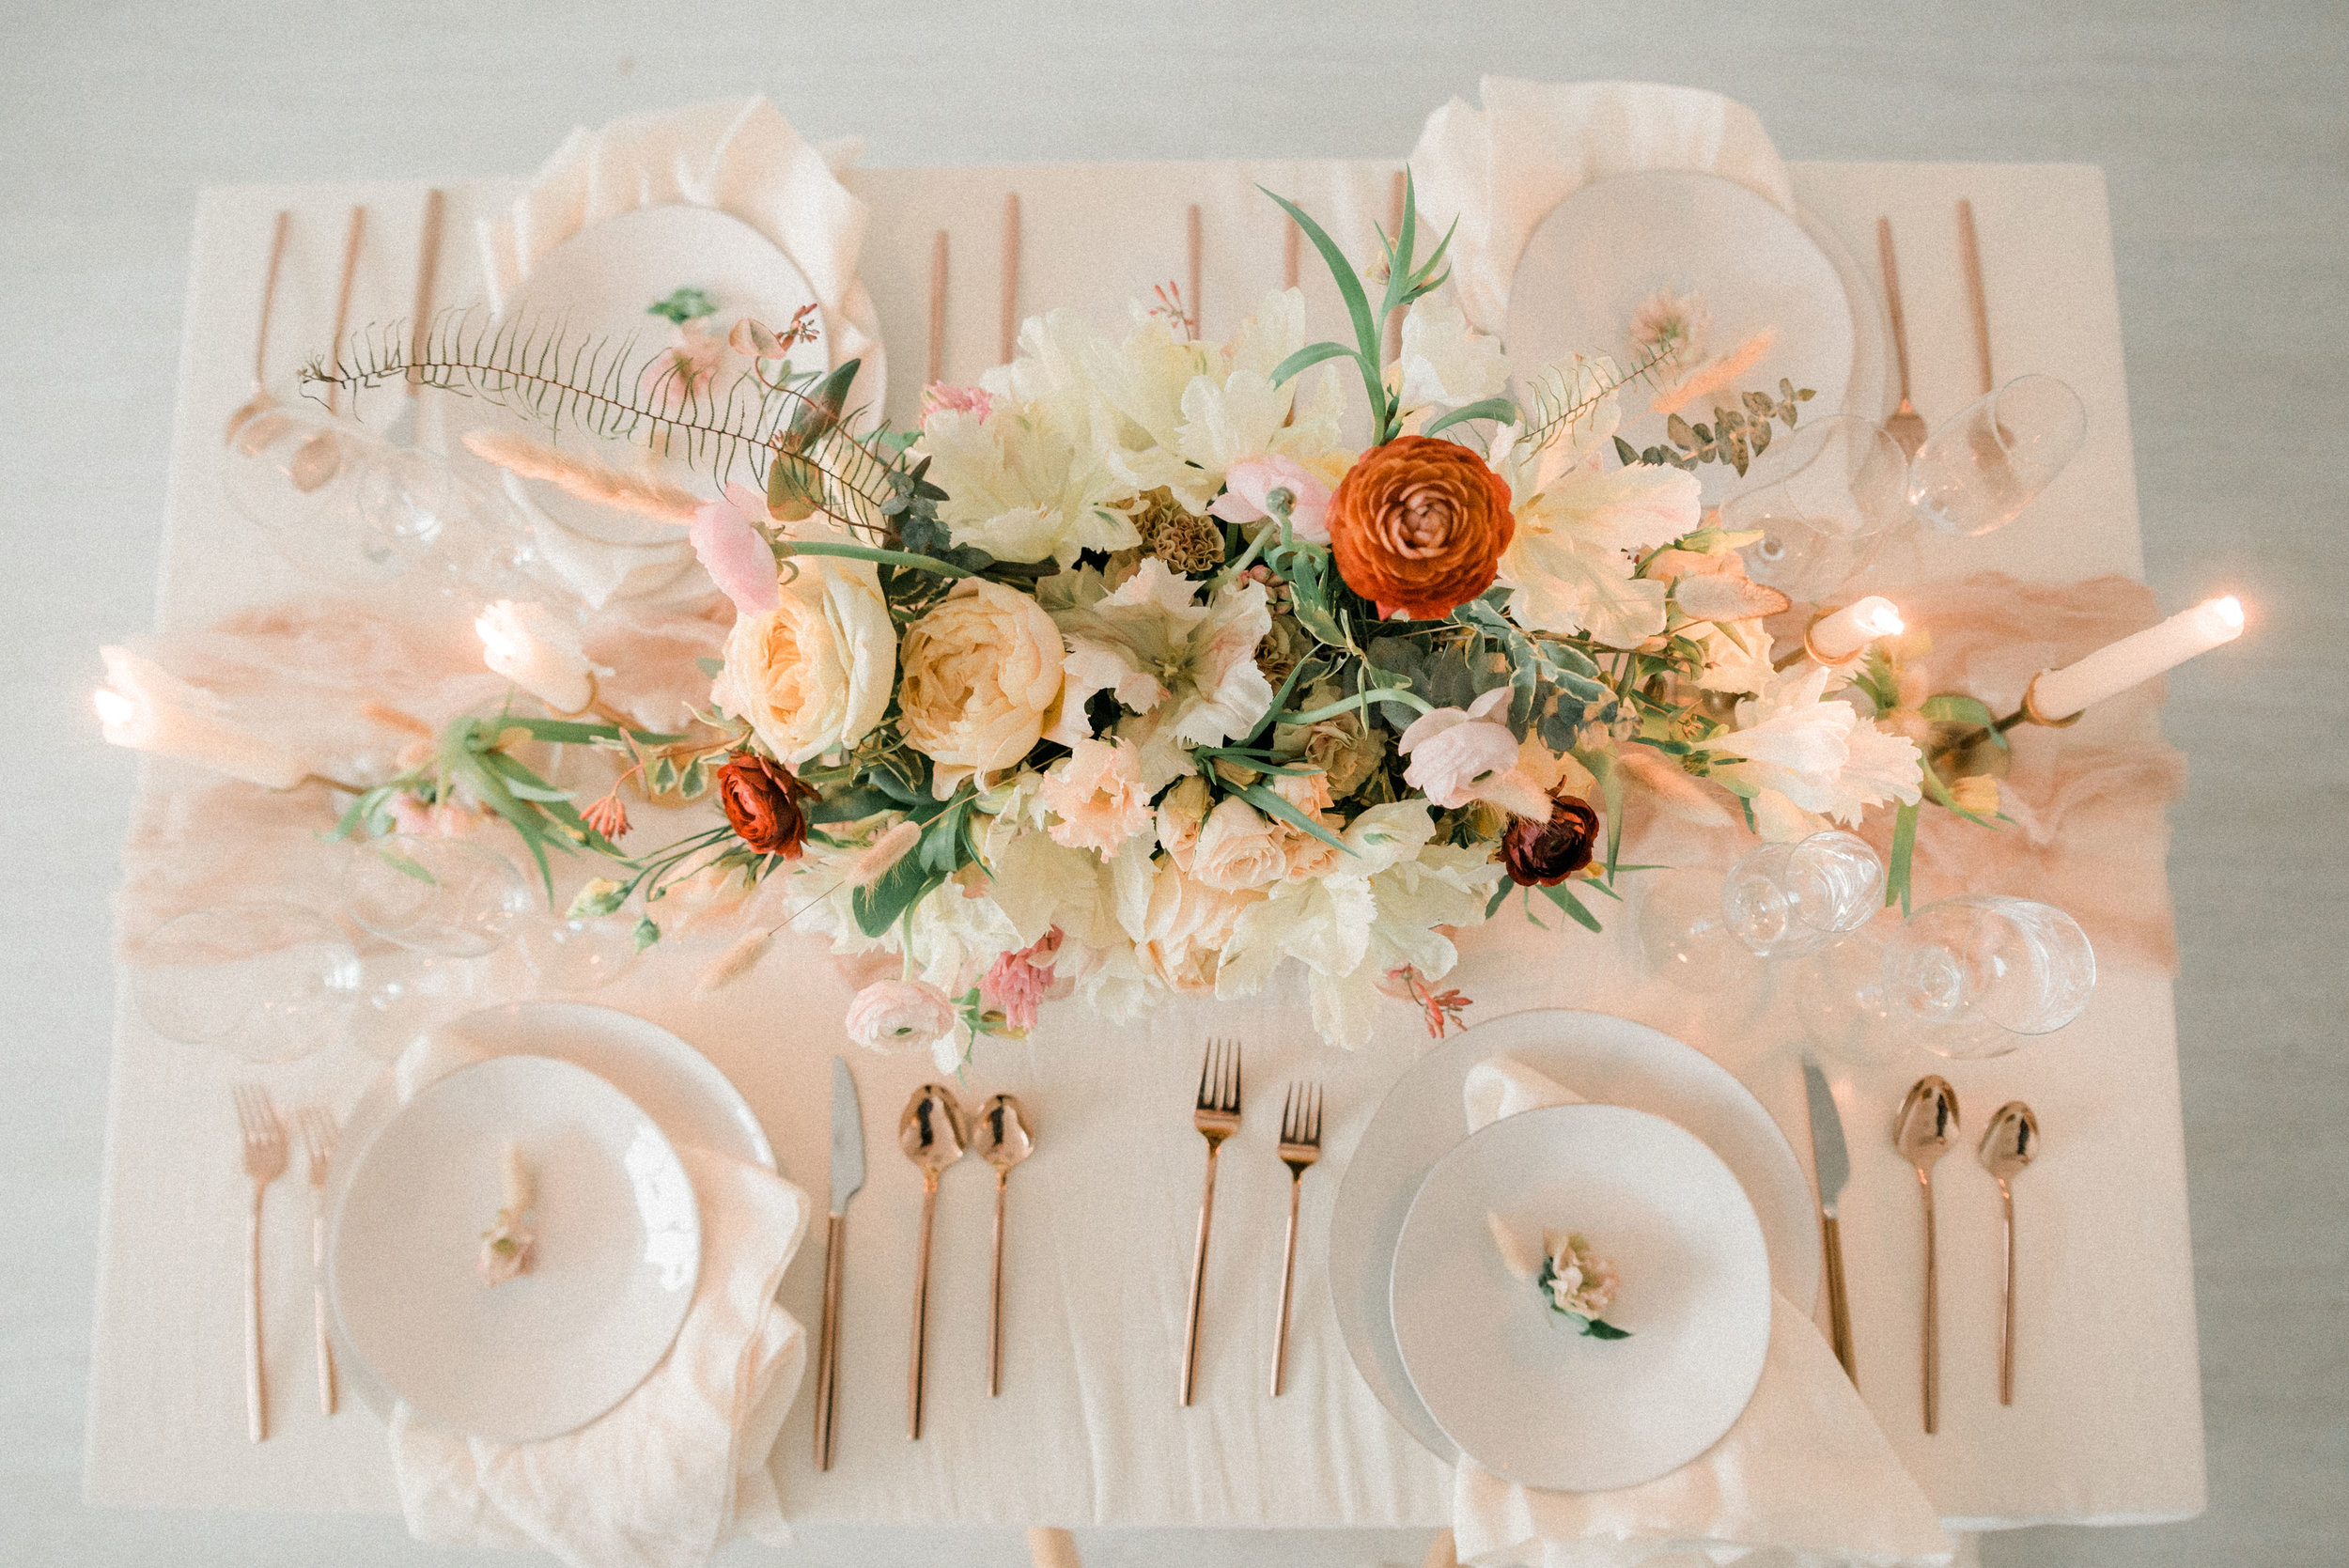 Decor Extras - The little things add up, but when you partner with us for planning, management or floral, take advantage of options like trend-forward brass candlesticks and lanterns or classic touches like vases and votives at no extra cost!